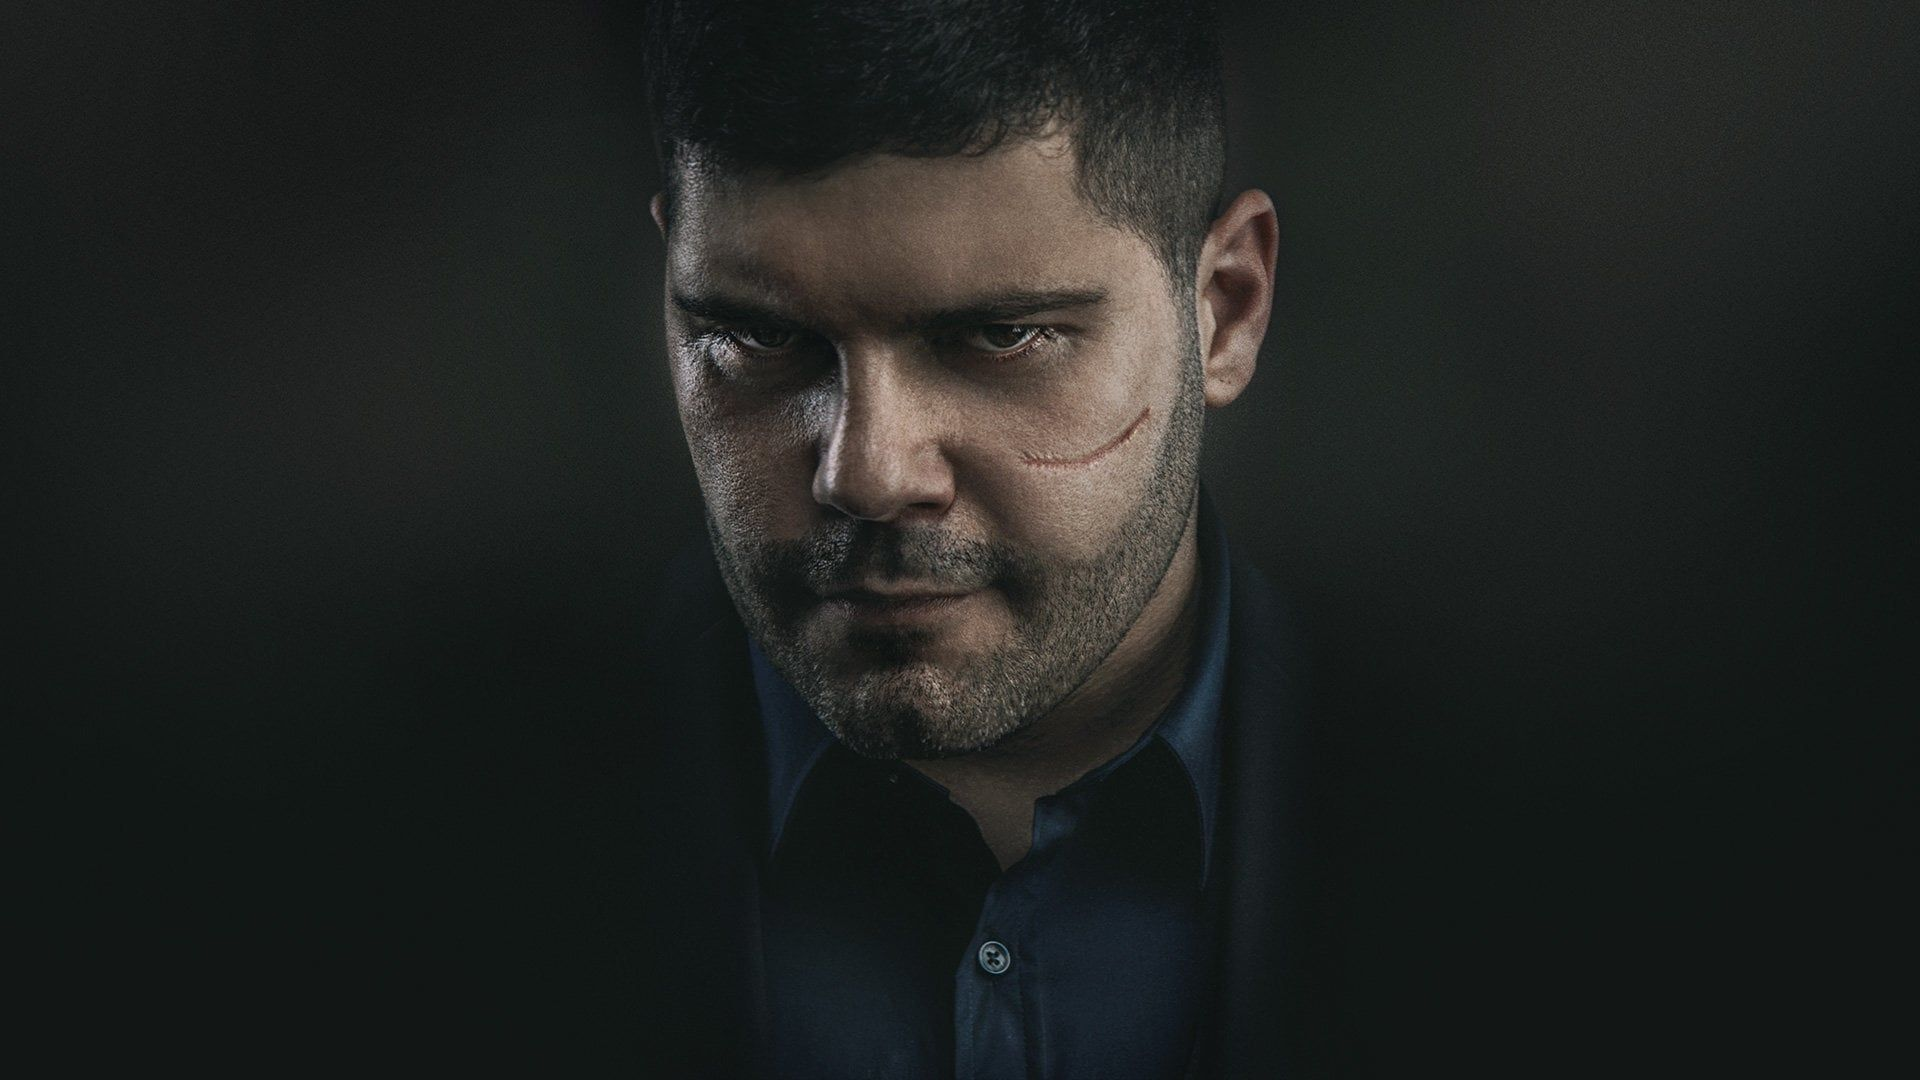 Gomorrah - Watch Episodes on Netflix or Streaming Online